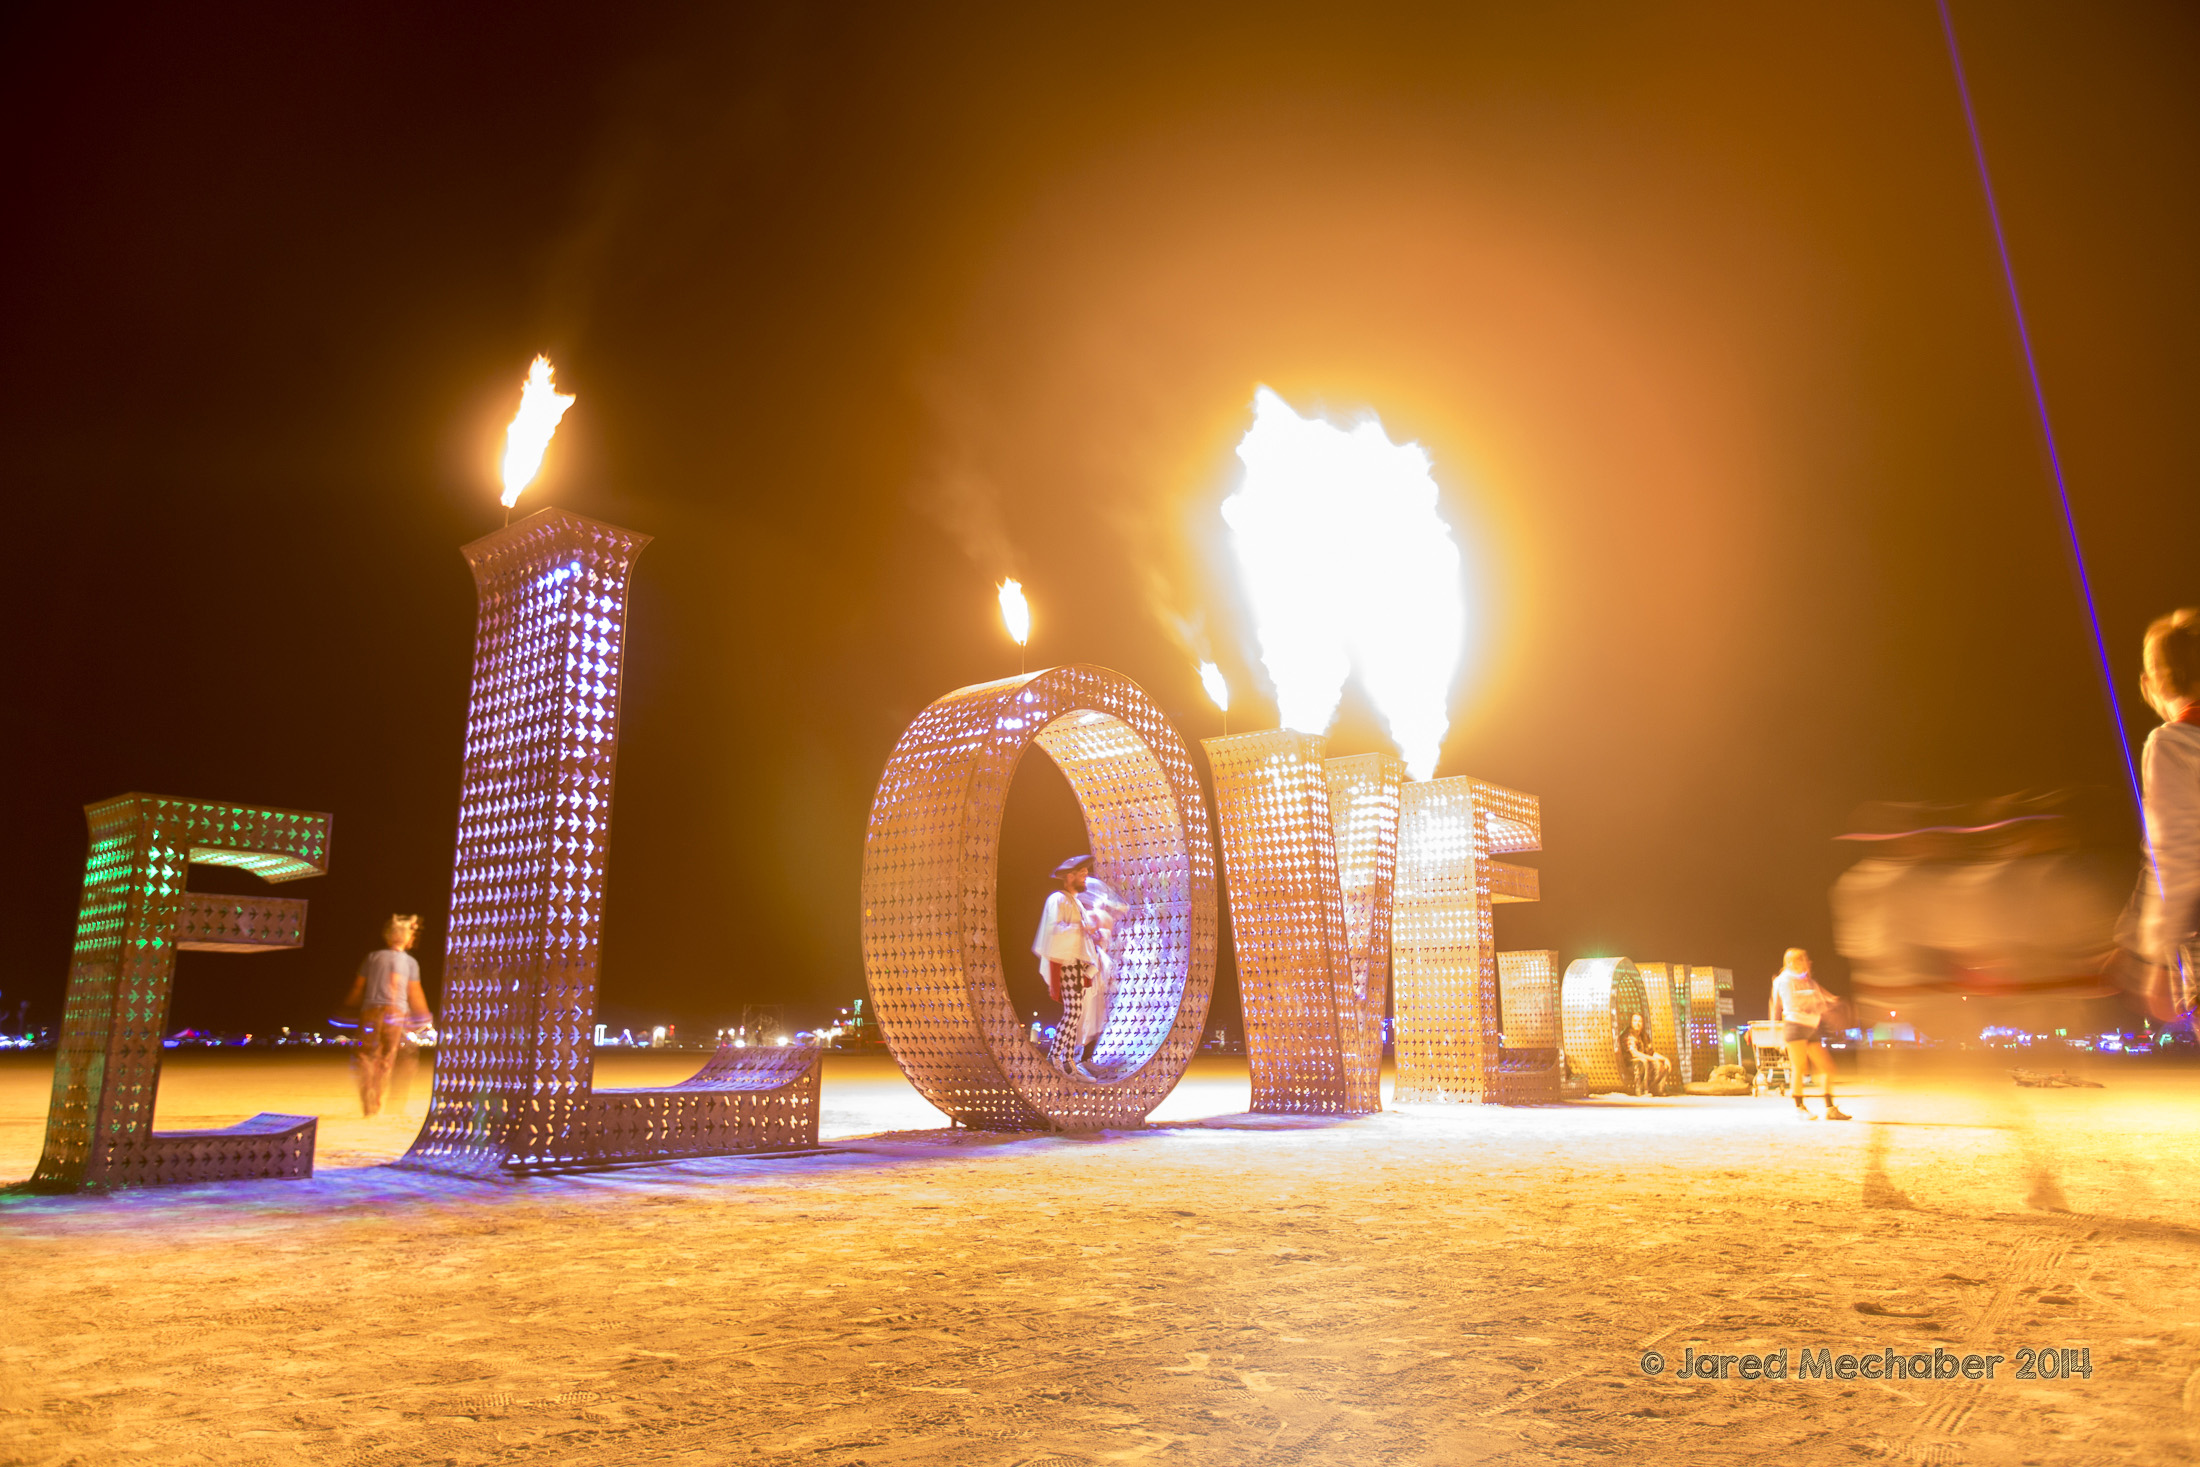 12-140827_Burningman_2410.JPG